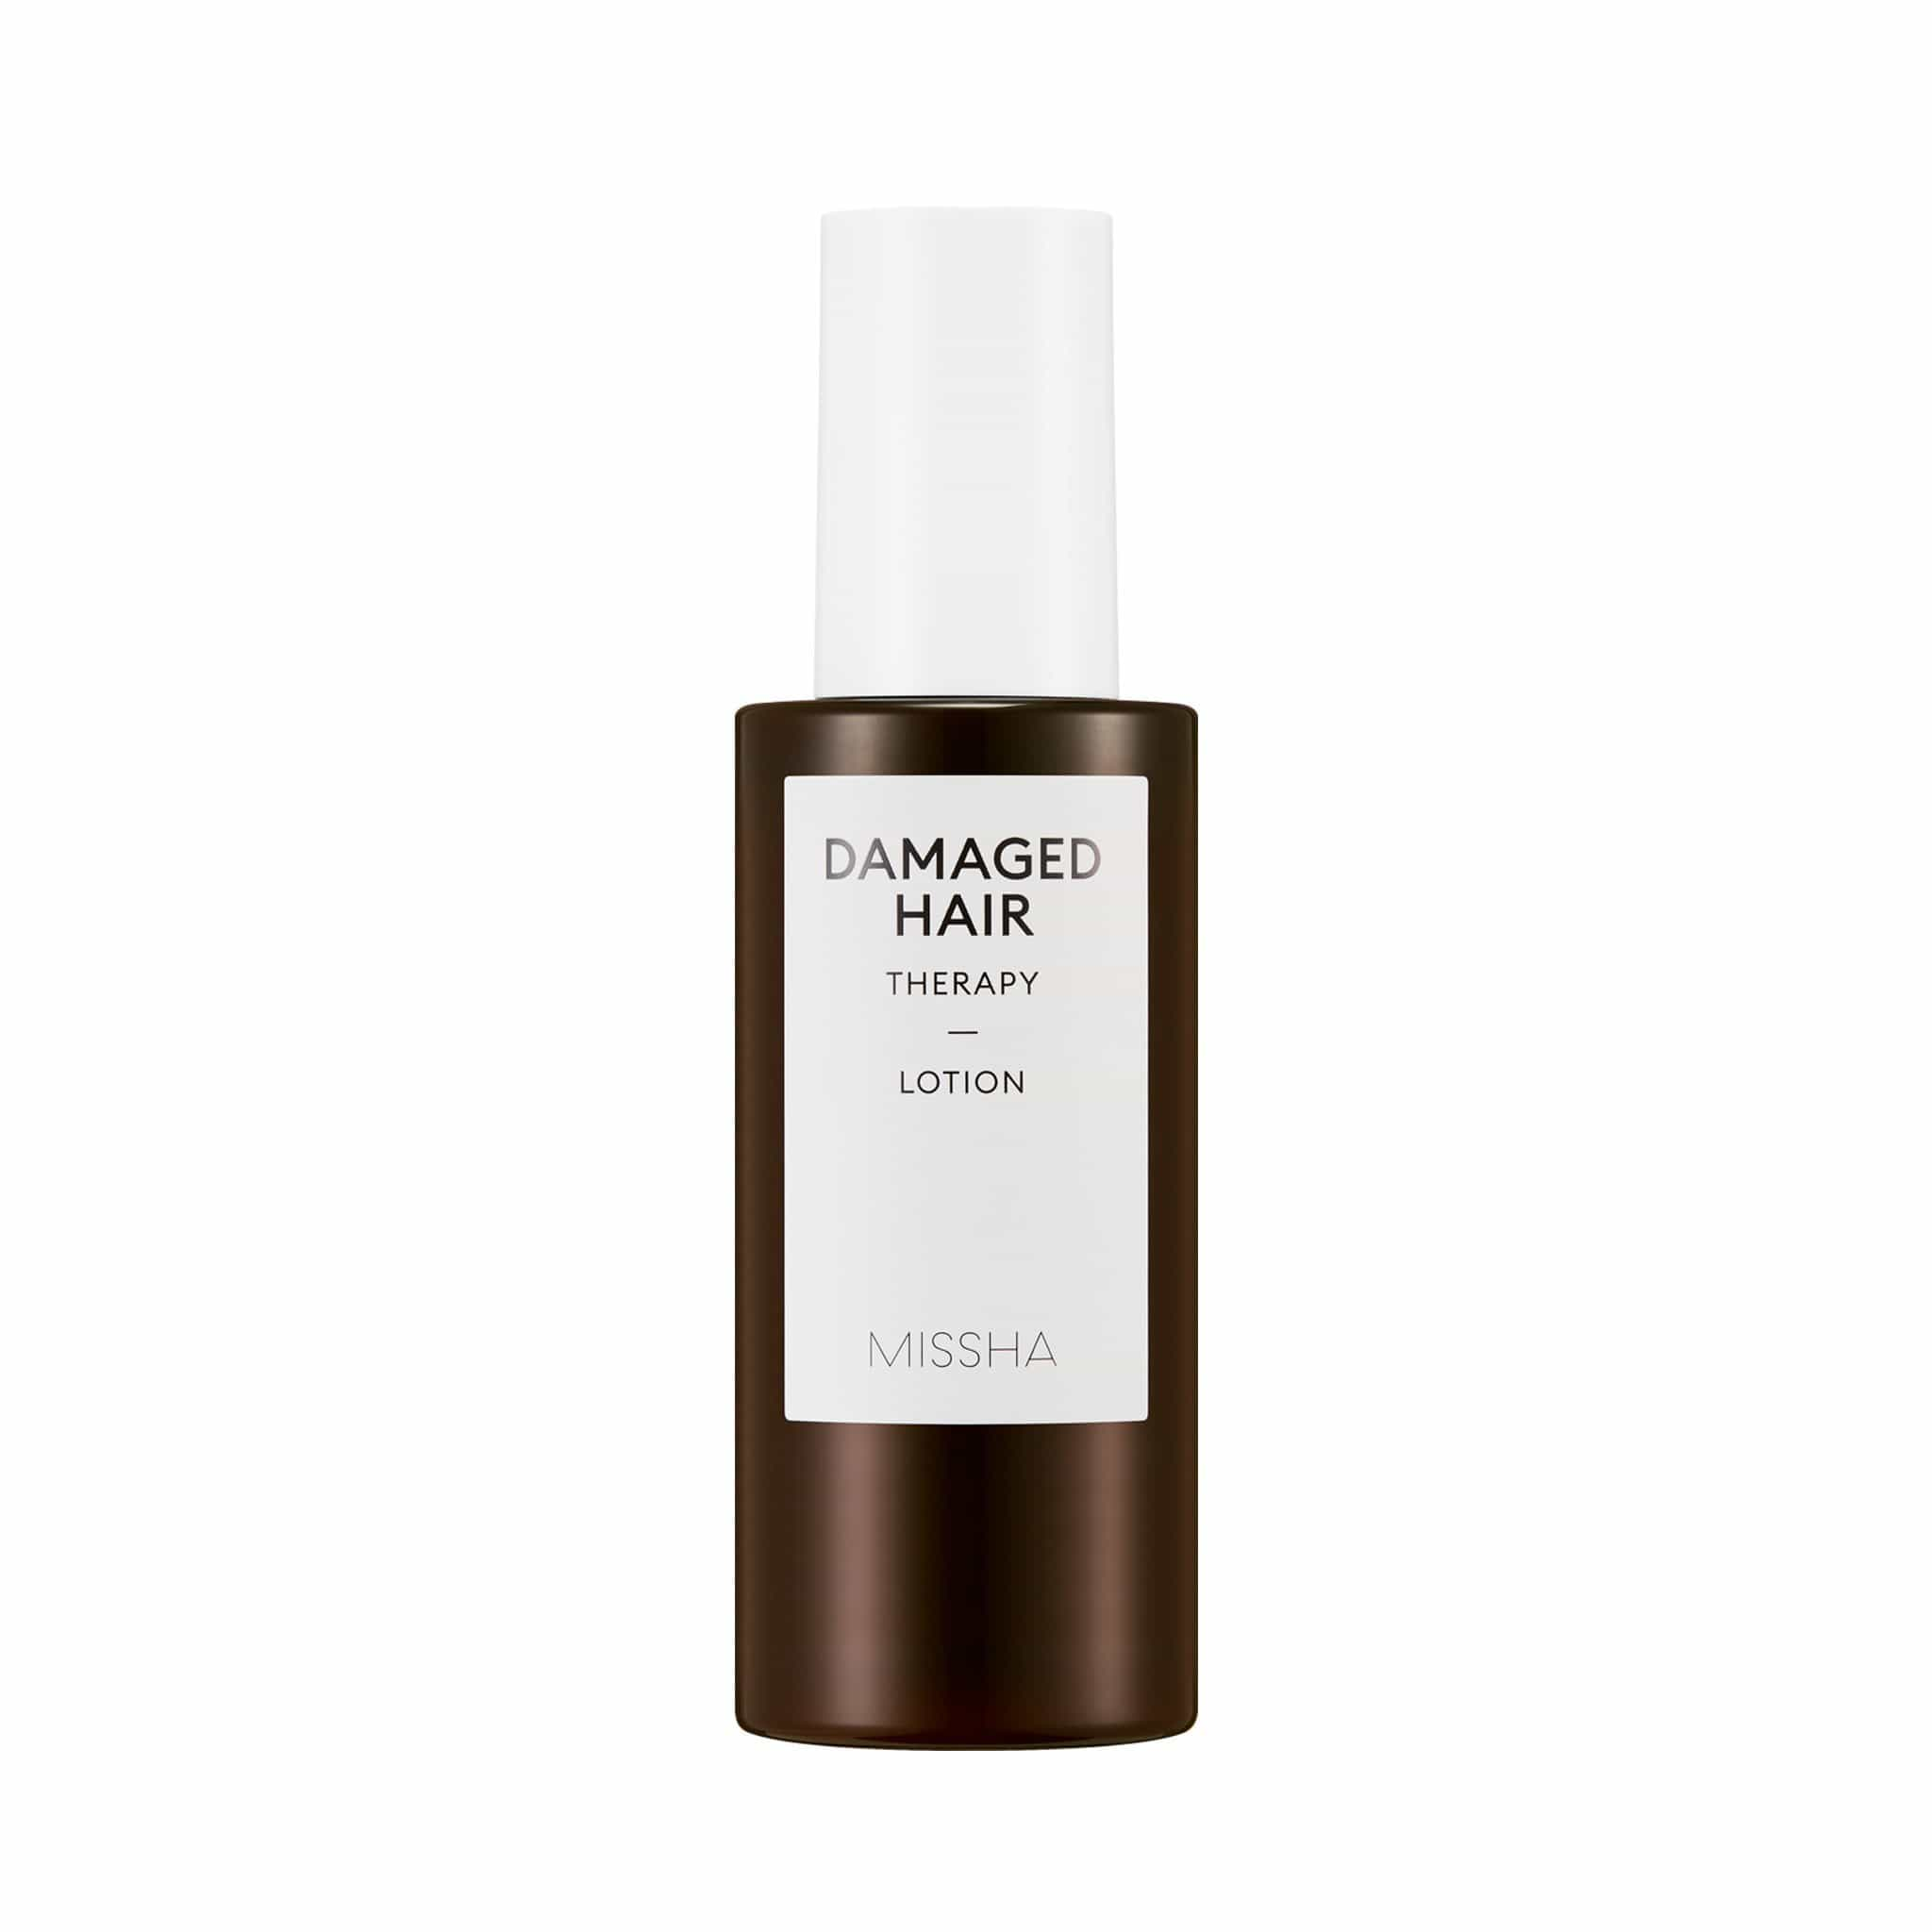 DAMAGED HAIR THERAPY LOTION - MISSHA